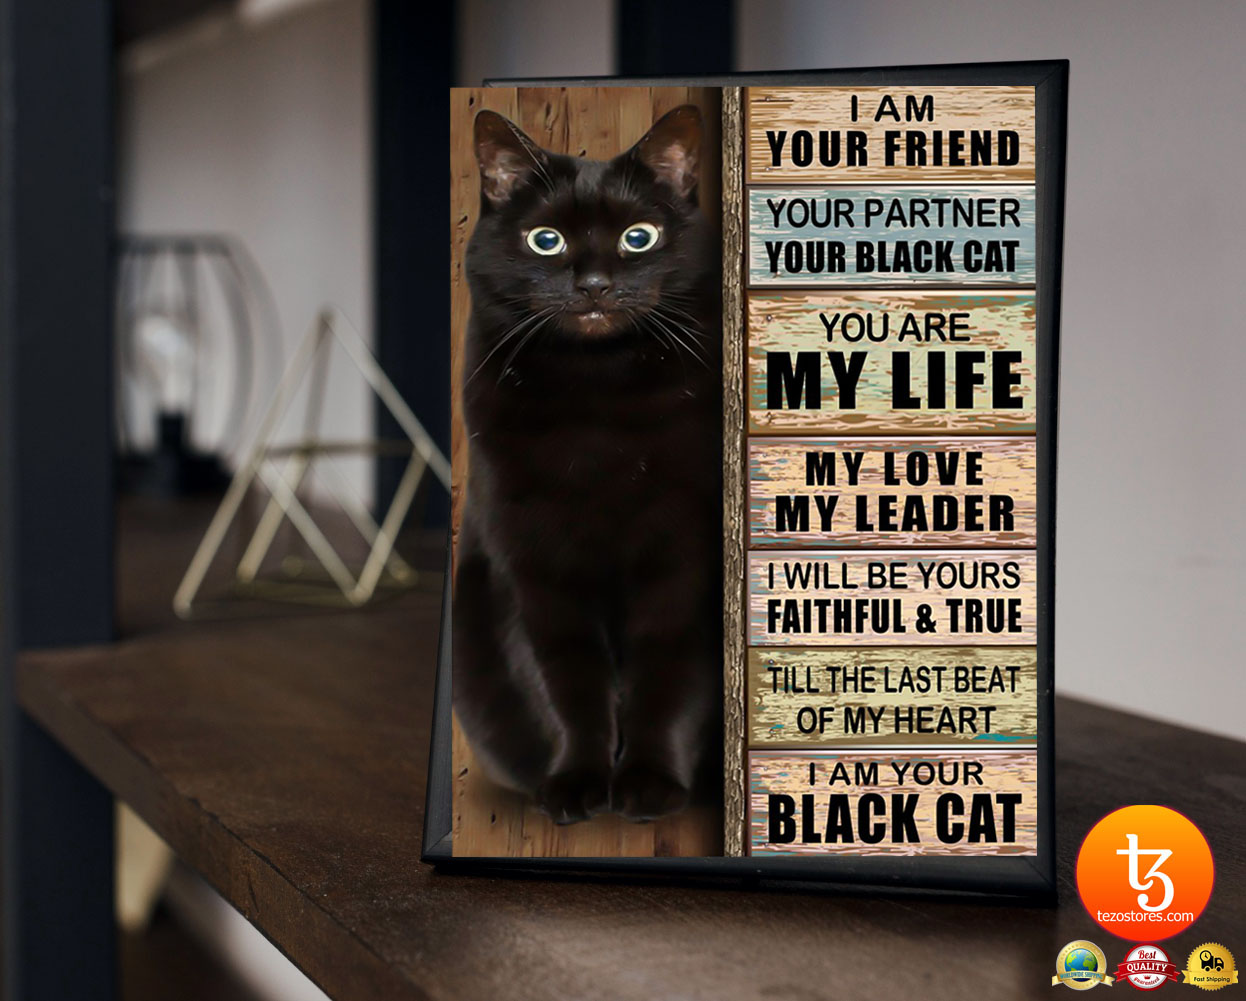 Cat-I-am-your-friend-your-partner-your-black-cat-you-are-my-life-poster-23